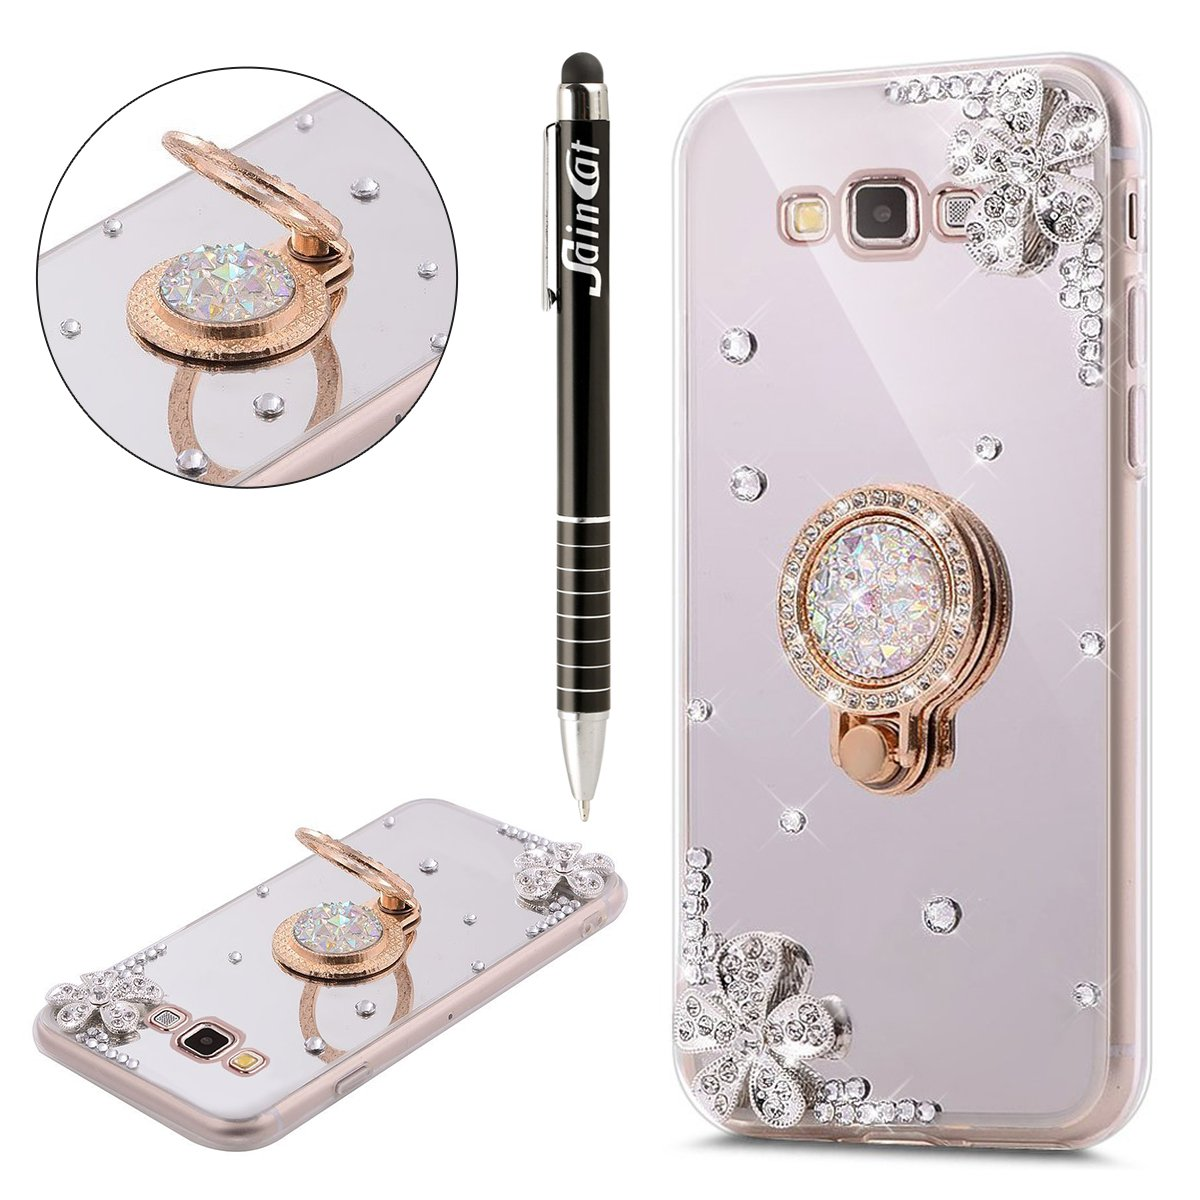 Custodia Galaxy Core Prime, Galaxy Core Prime Cover Sottile Silicone, SainCat Cover per Samsung Galaxy Core Prime G360 Silicone Morbido Glitter, Bling Glitter Diamonds Shock-Absorption Ultra Slim Transparent Silicone Case Ultra Sottile Morbida Gel Cover TP